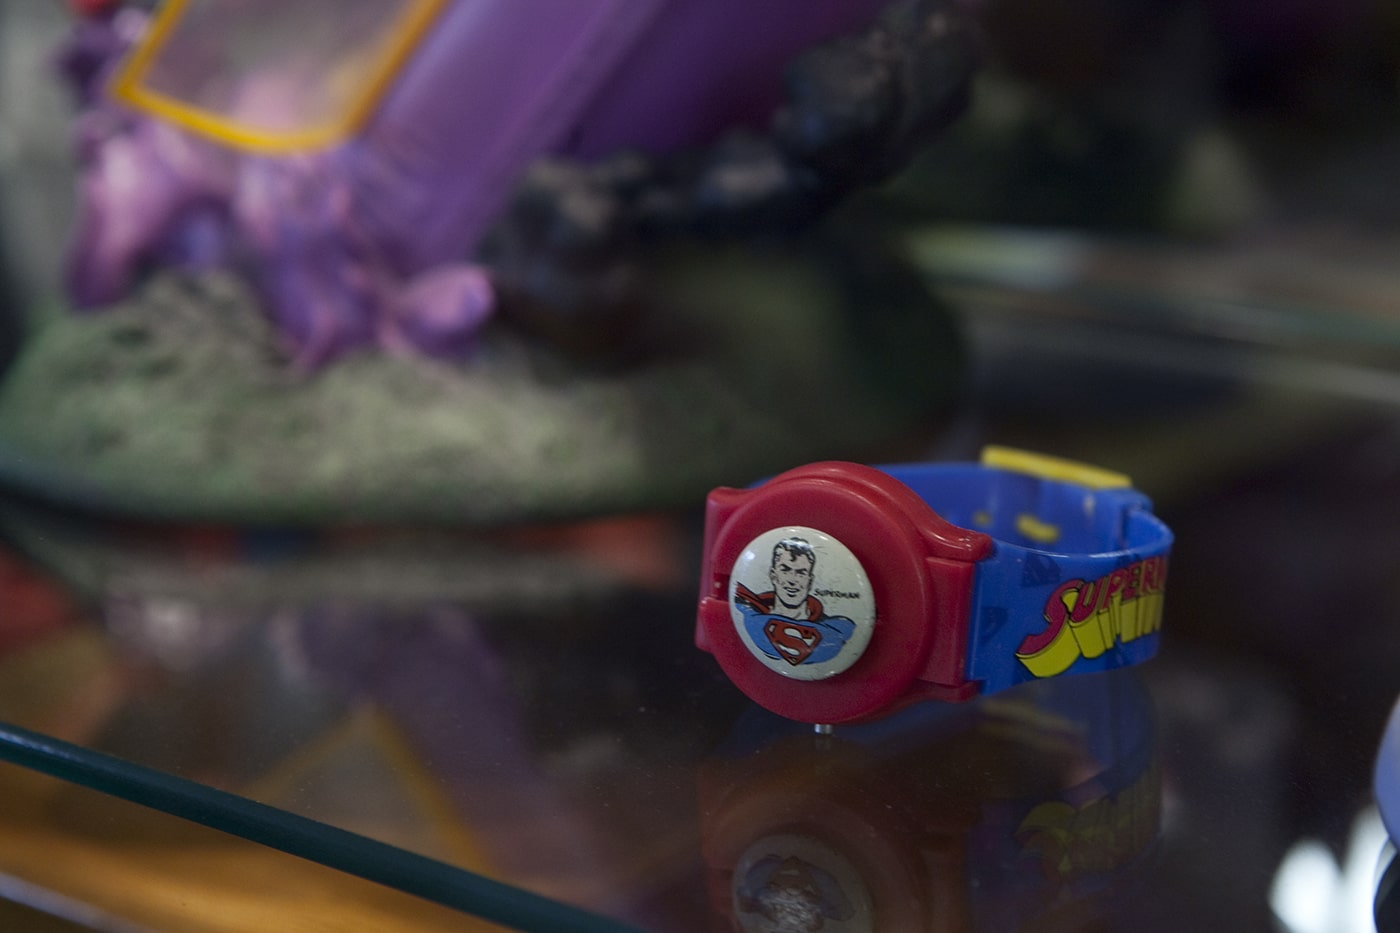 Superman watch. SuperTAM on 66 - Superman Memorabilia & Ice Cream in Carterville, Missouri